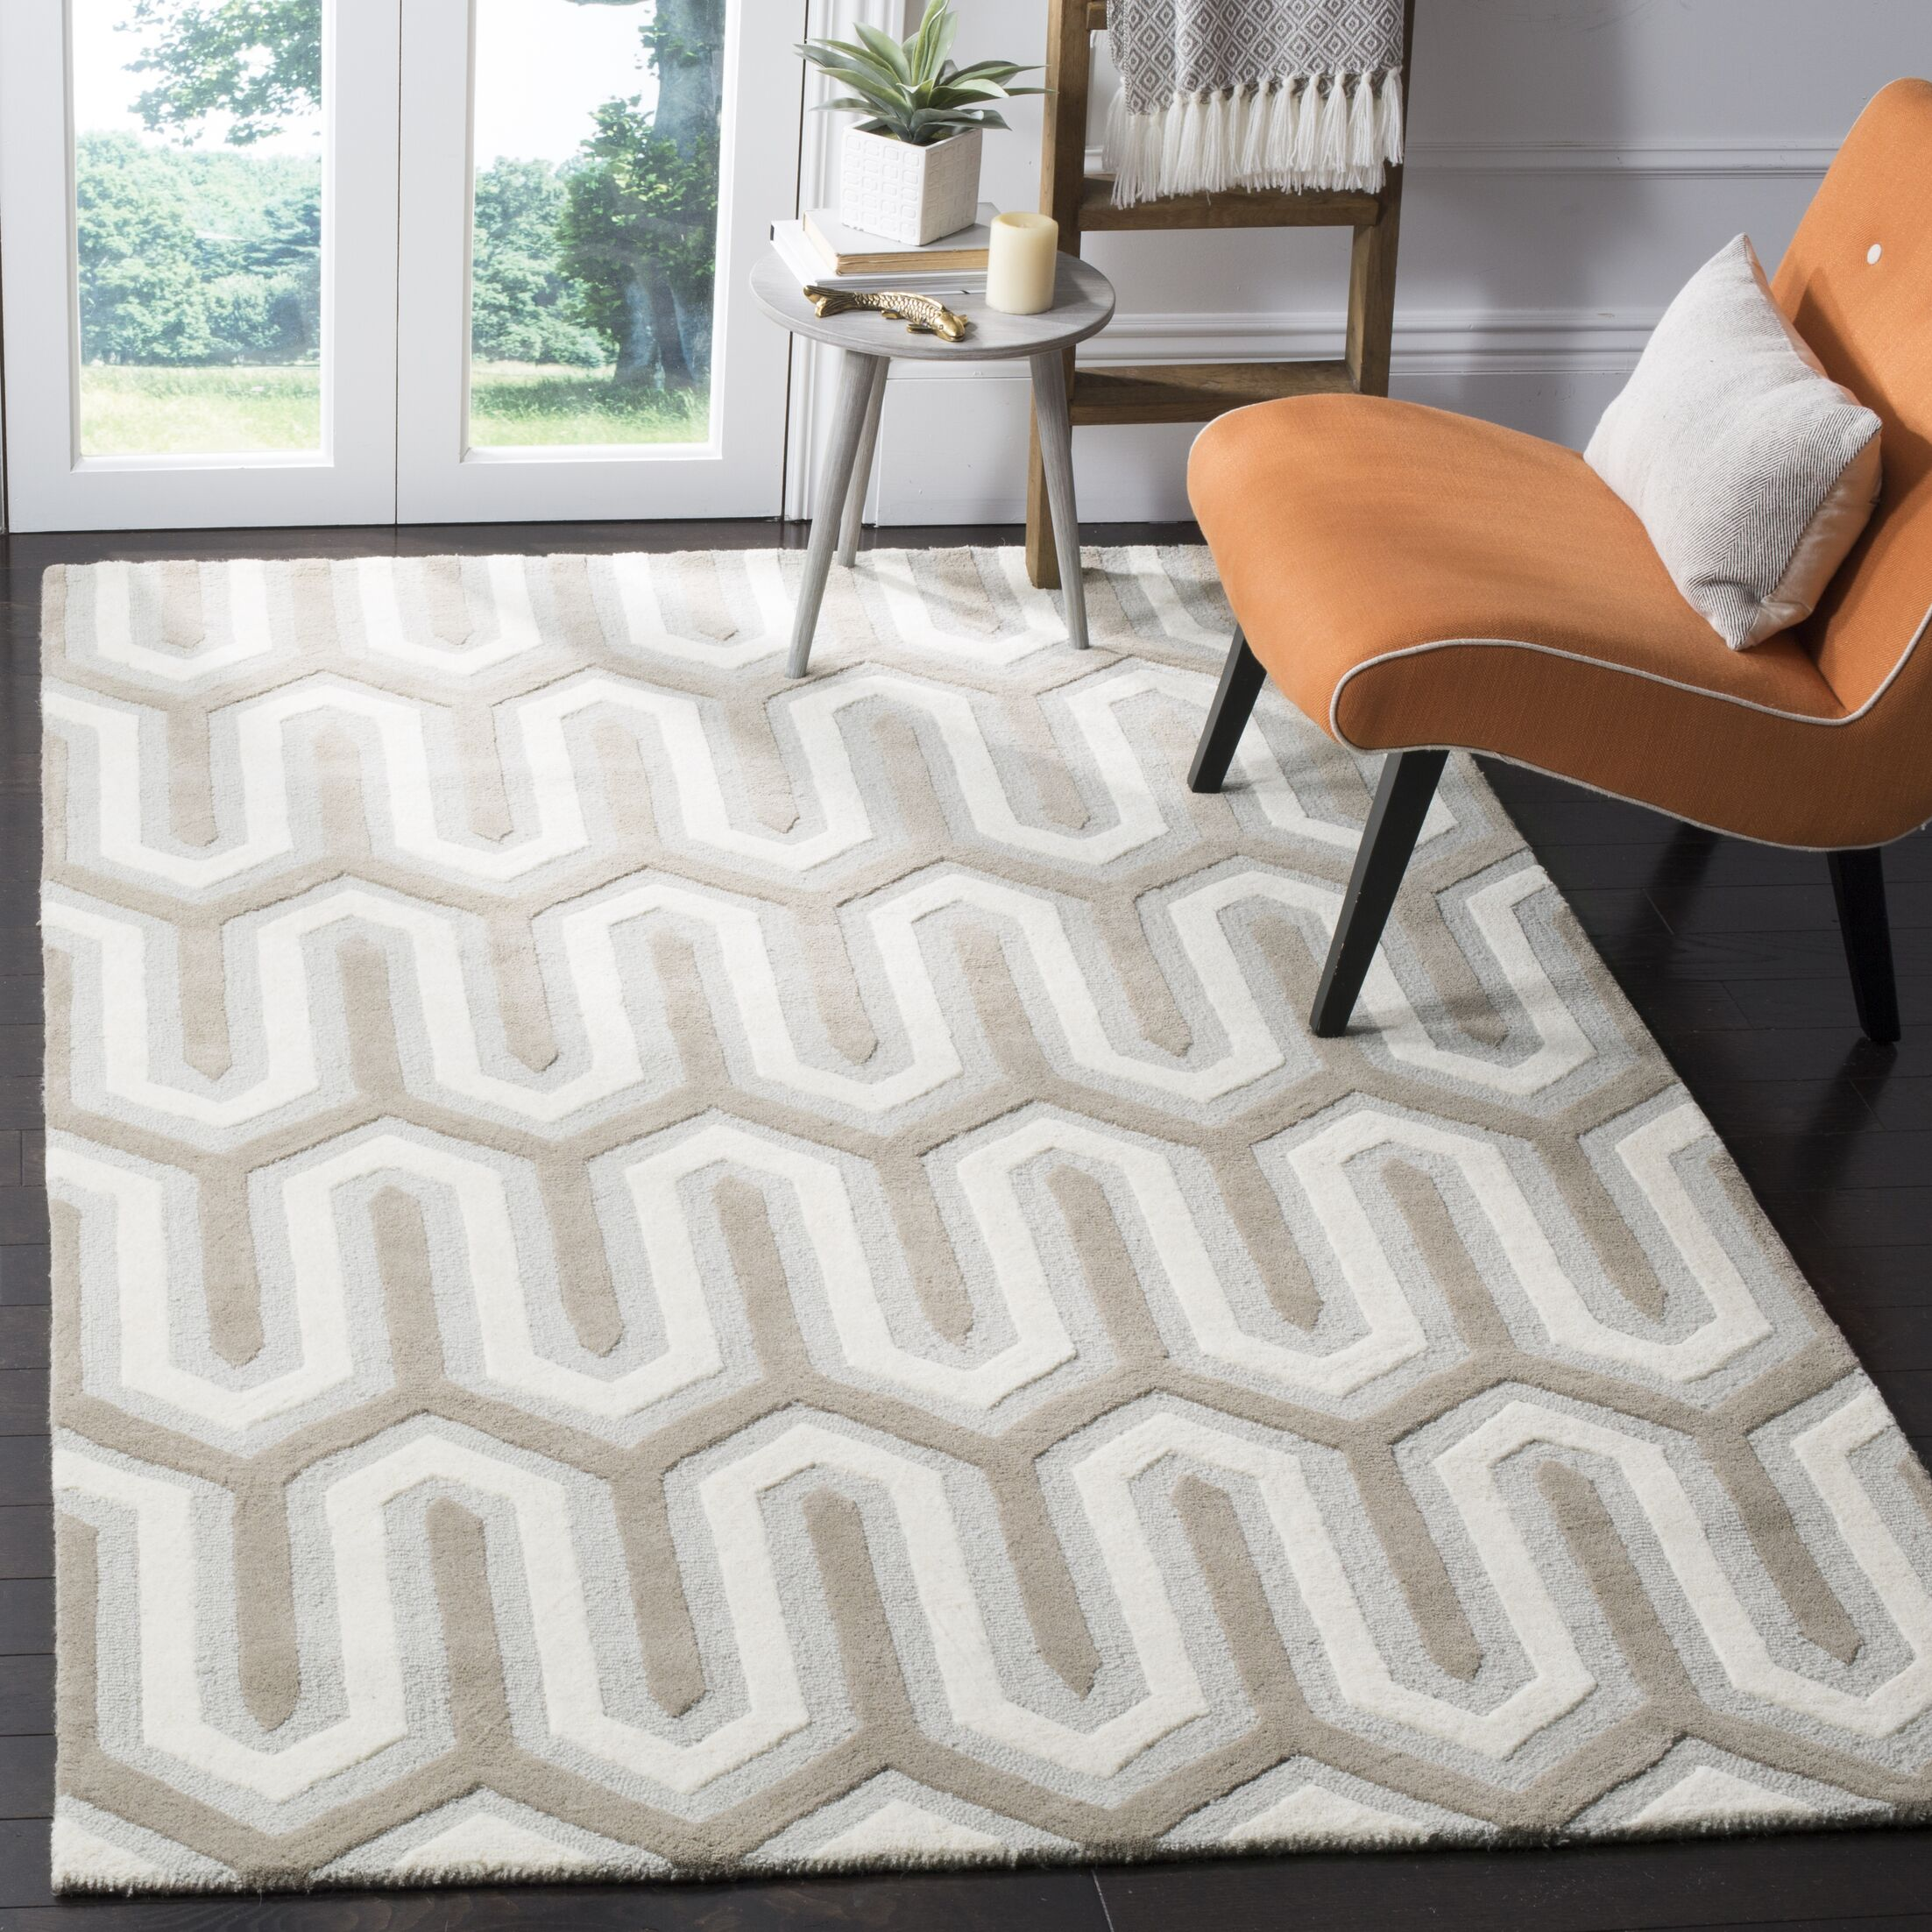 Martins Hand-Tufted Light Gray & Ivory Area Rug Rug Size: Rectangle 4' x 6'